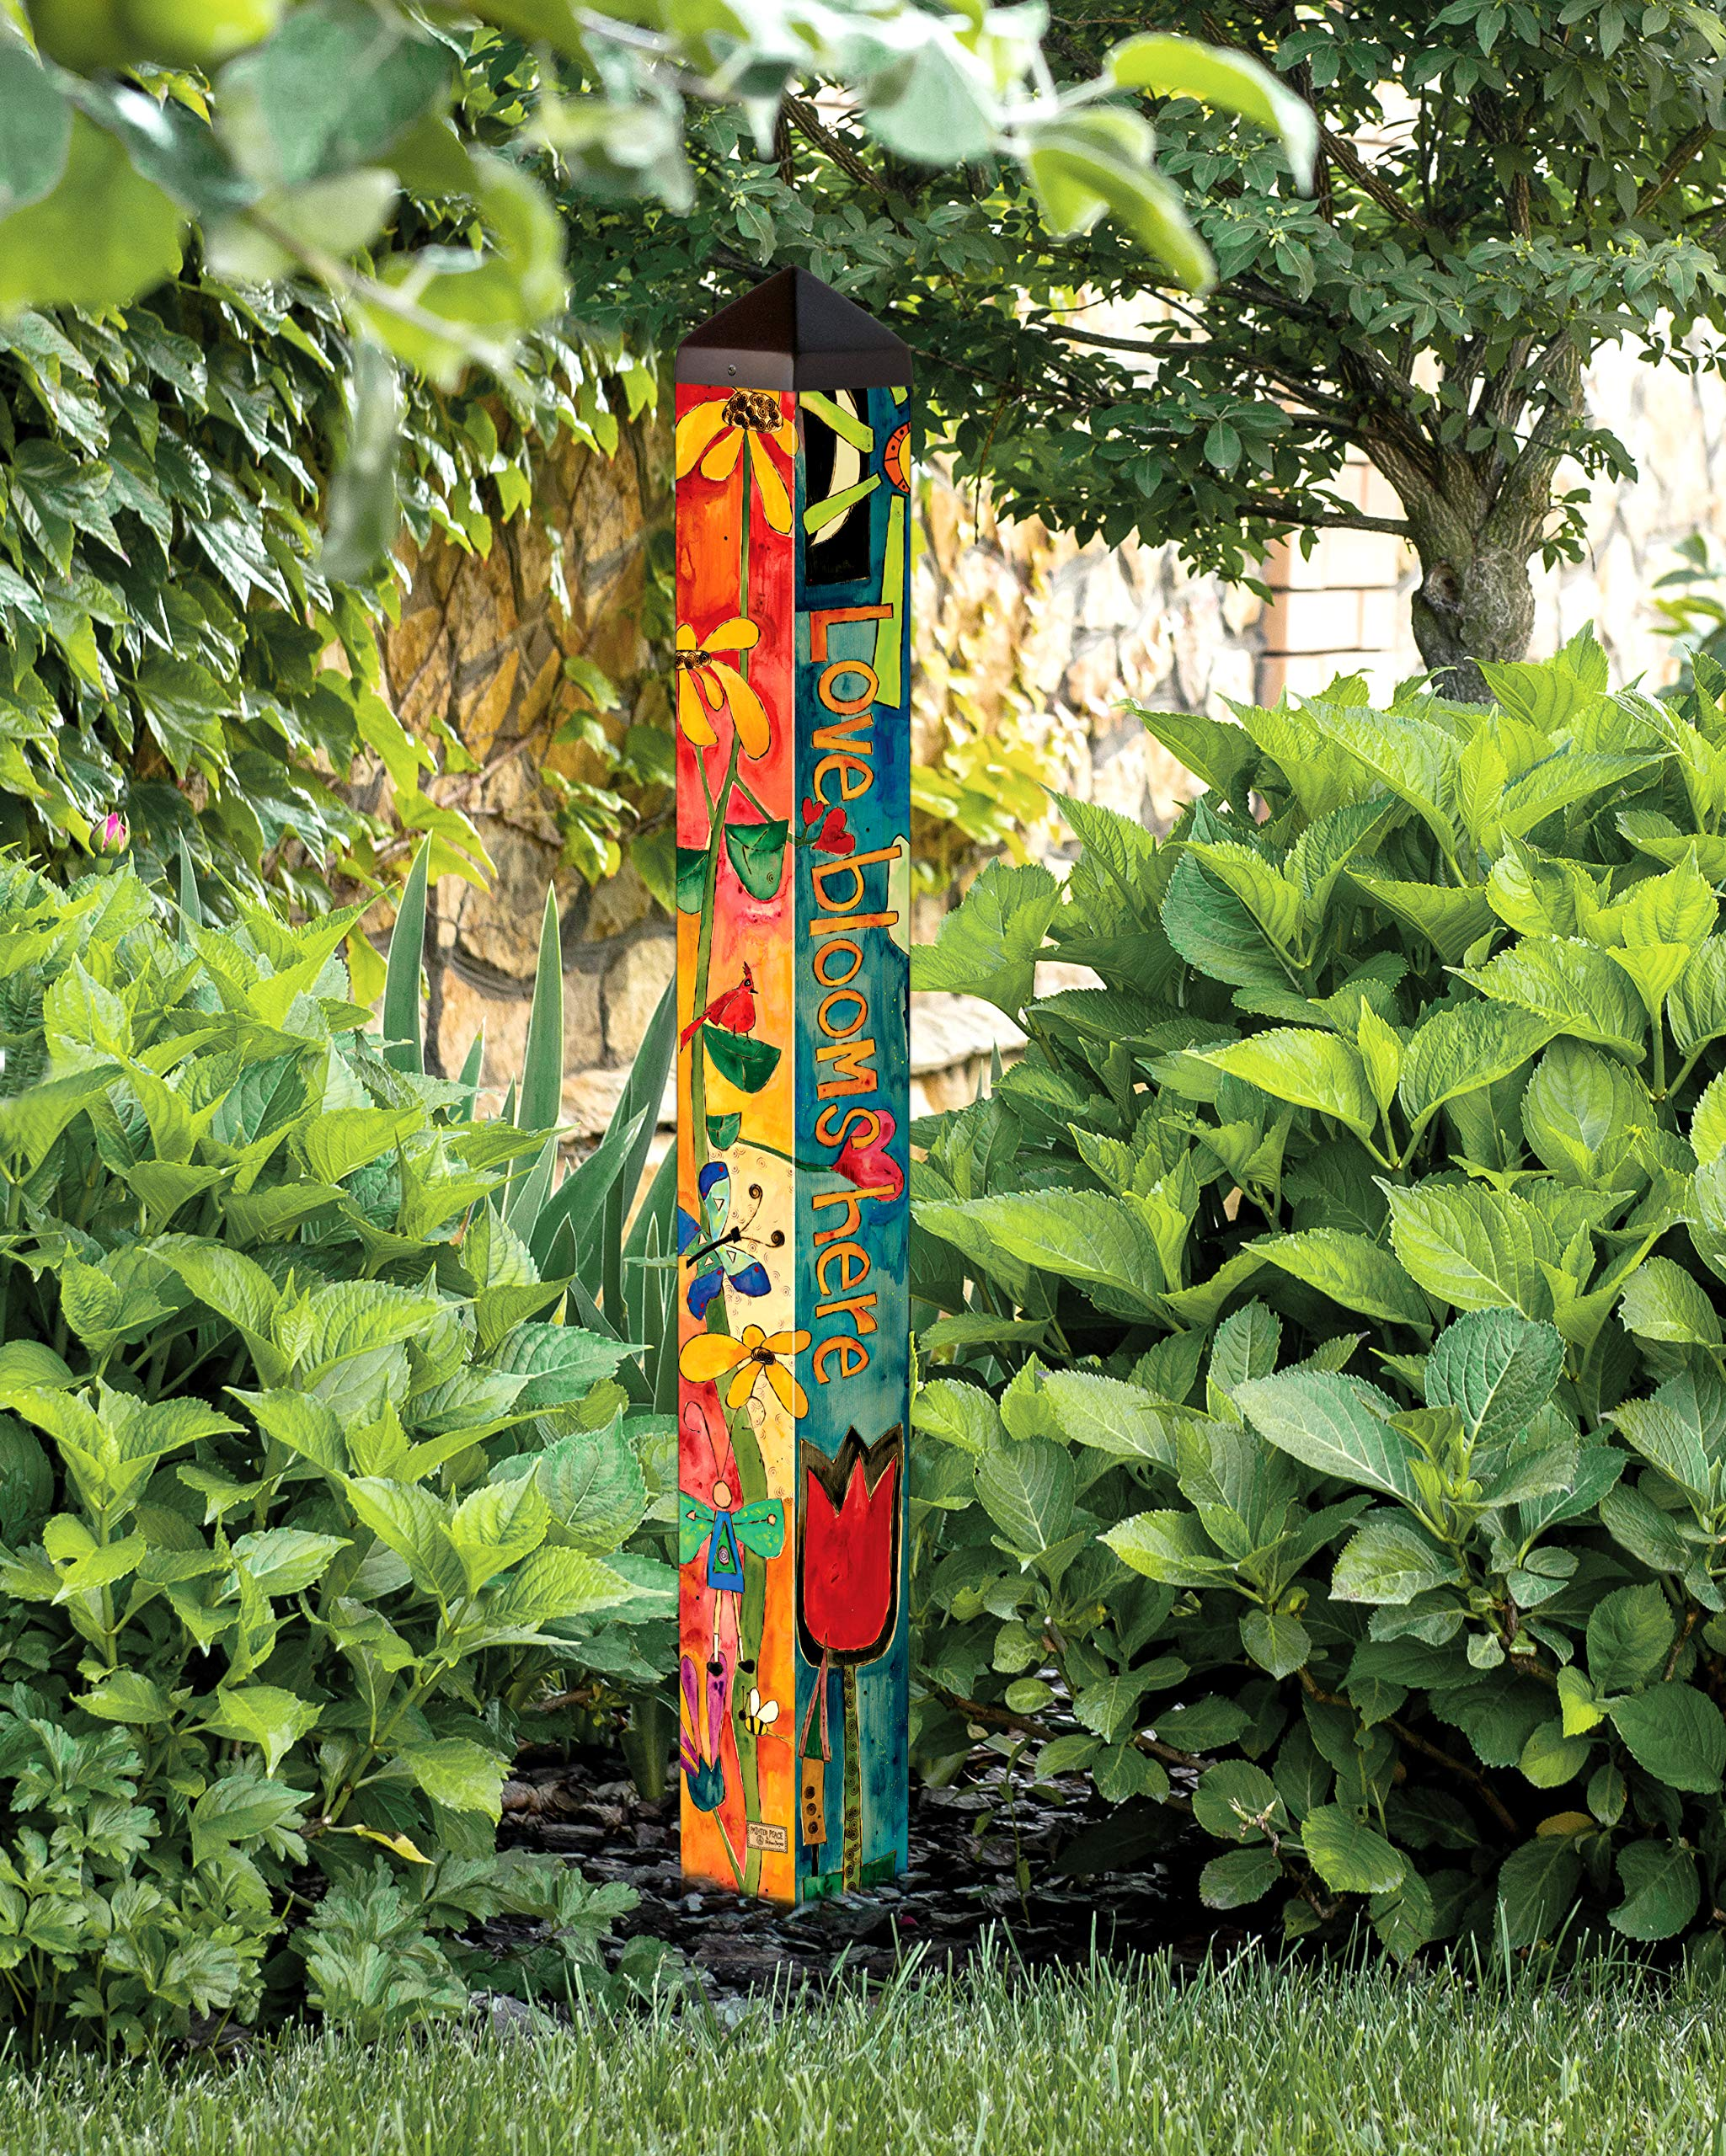 Studio M Love Garden Art Pole Bold Floral Outdoor Decorative Garden Post, Made in USA, 40 Inches Tall by Studio M (Image #3)